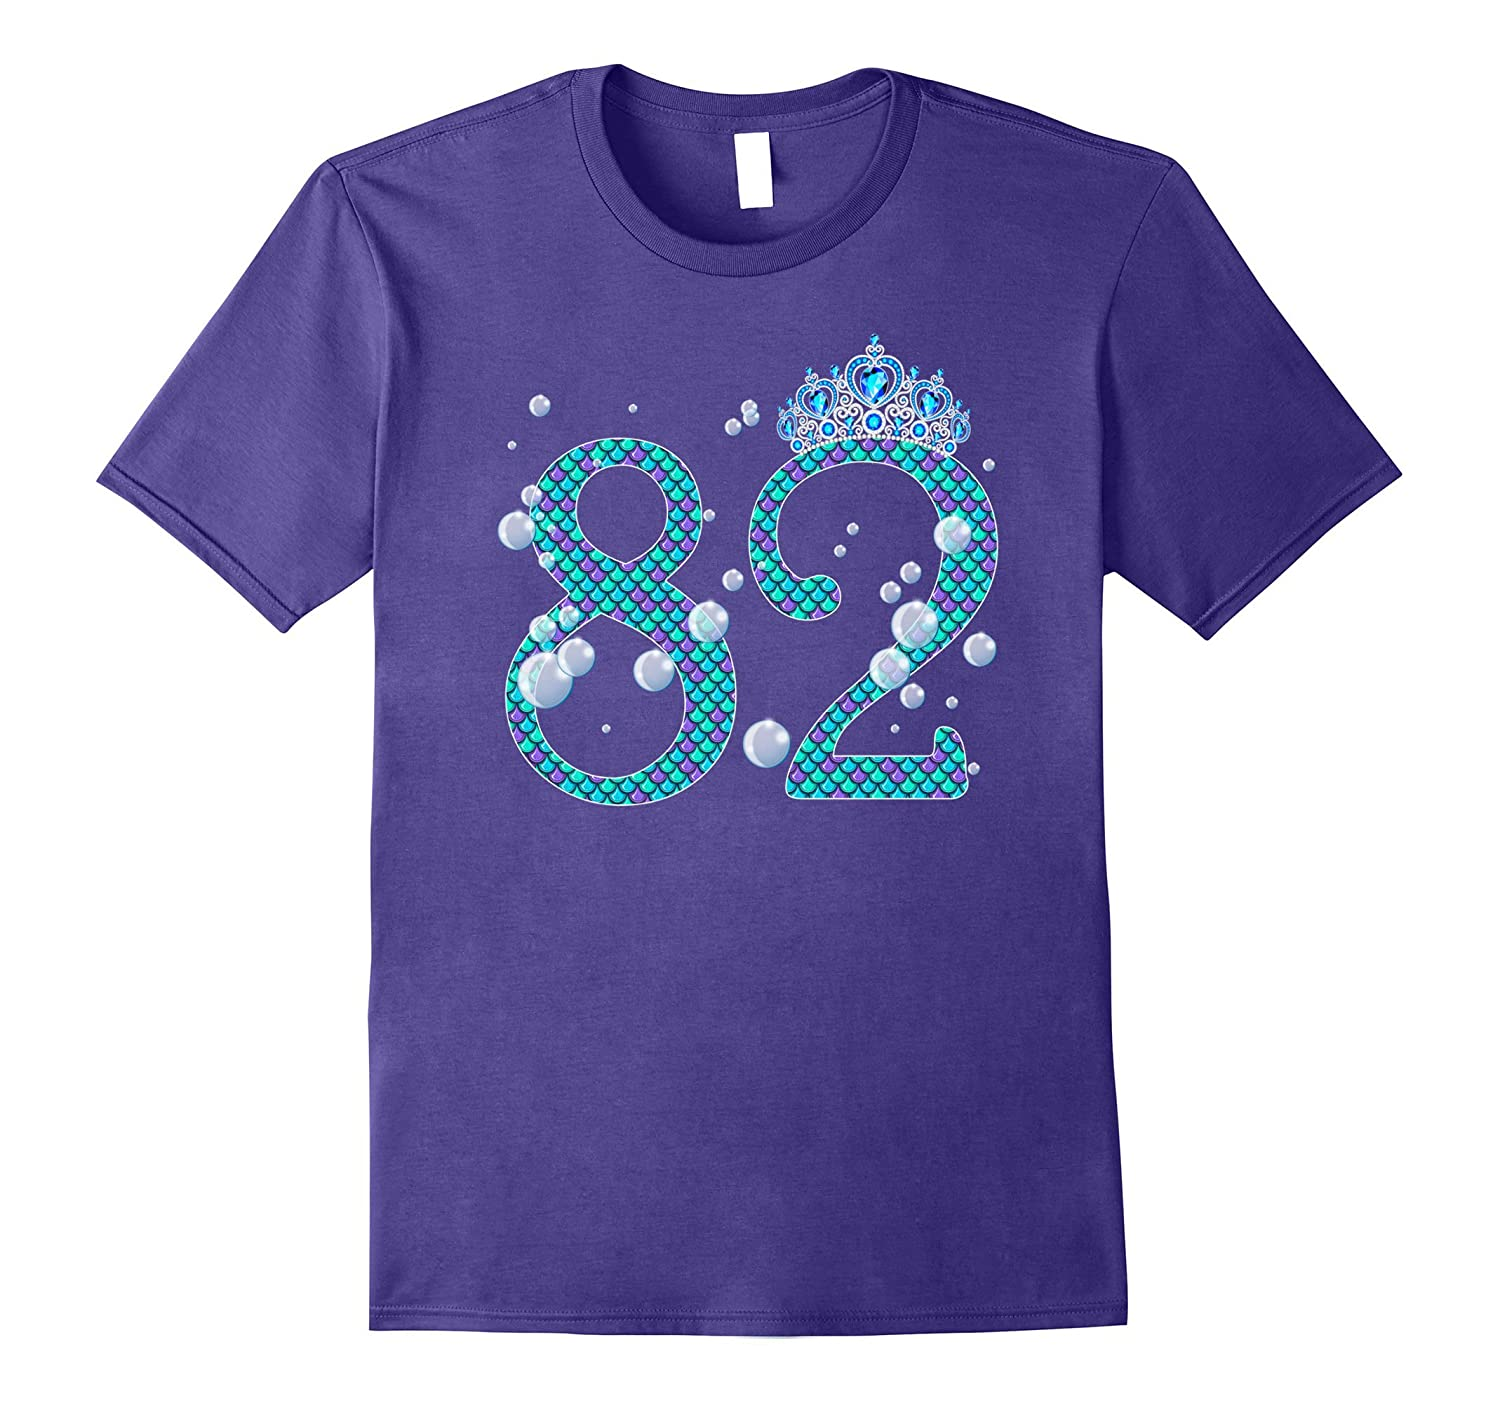 82 Year Old Shirt Mermaid 82nd Birthday TShirt PL